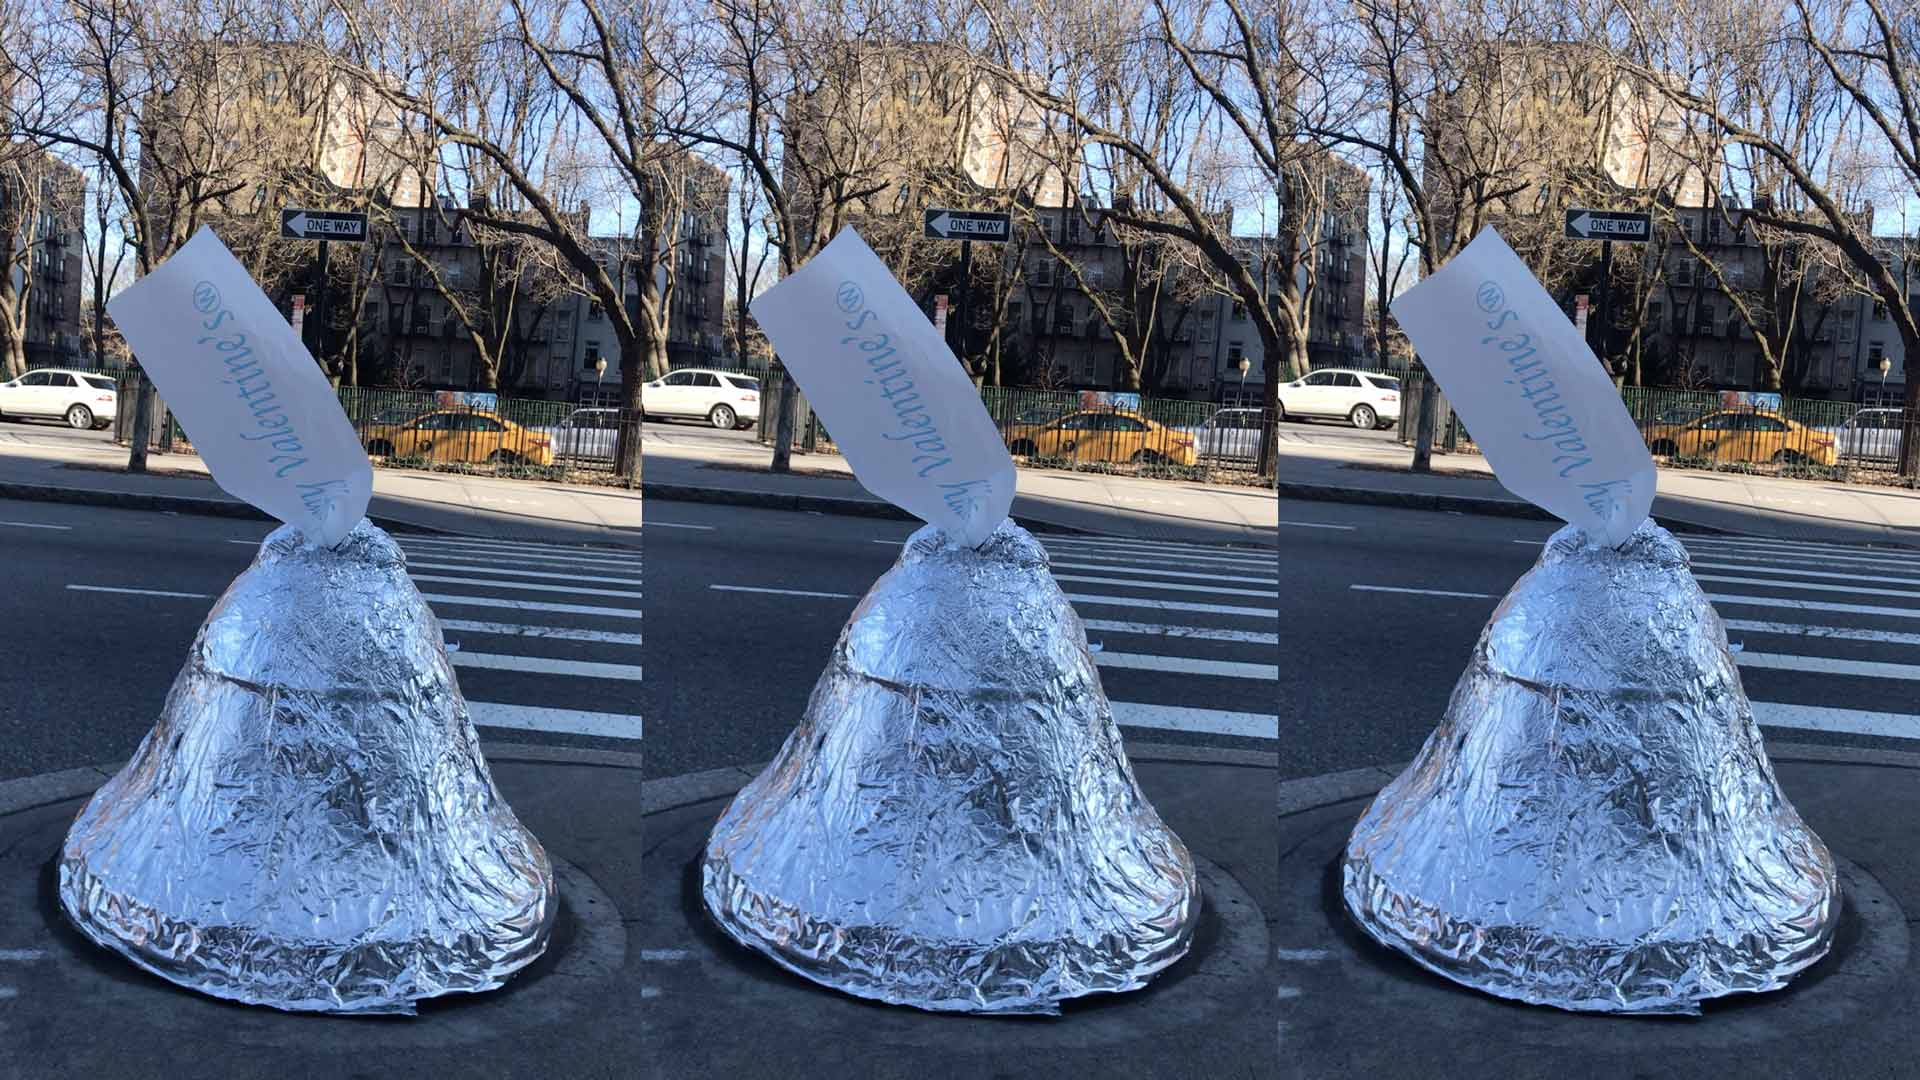 4 giant hersey kiss scultures